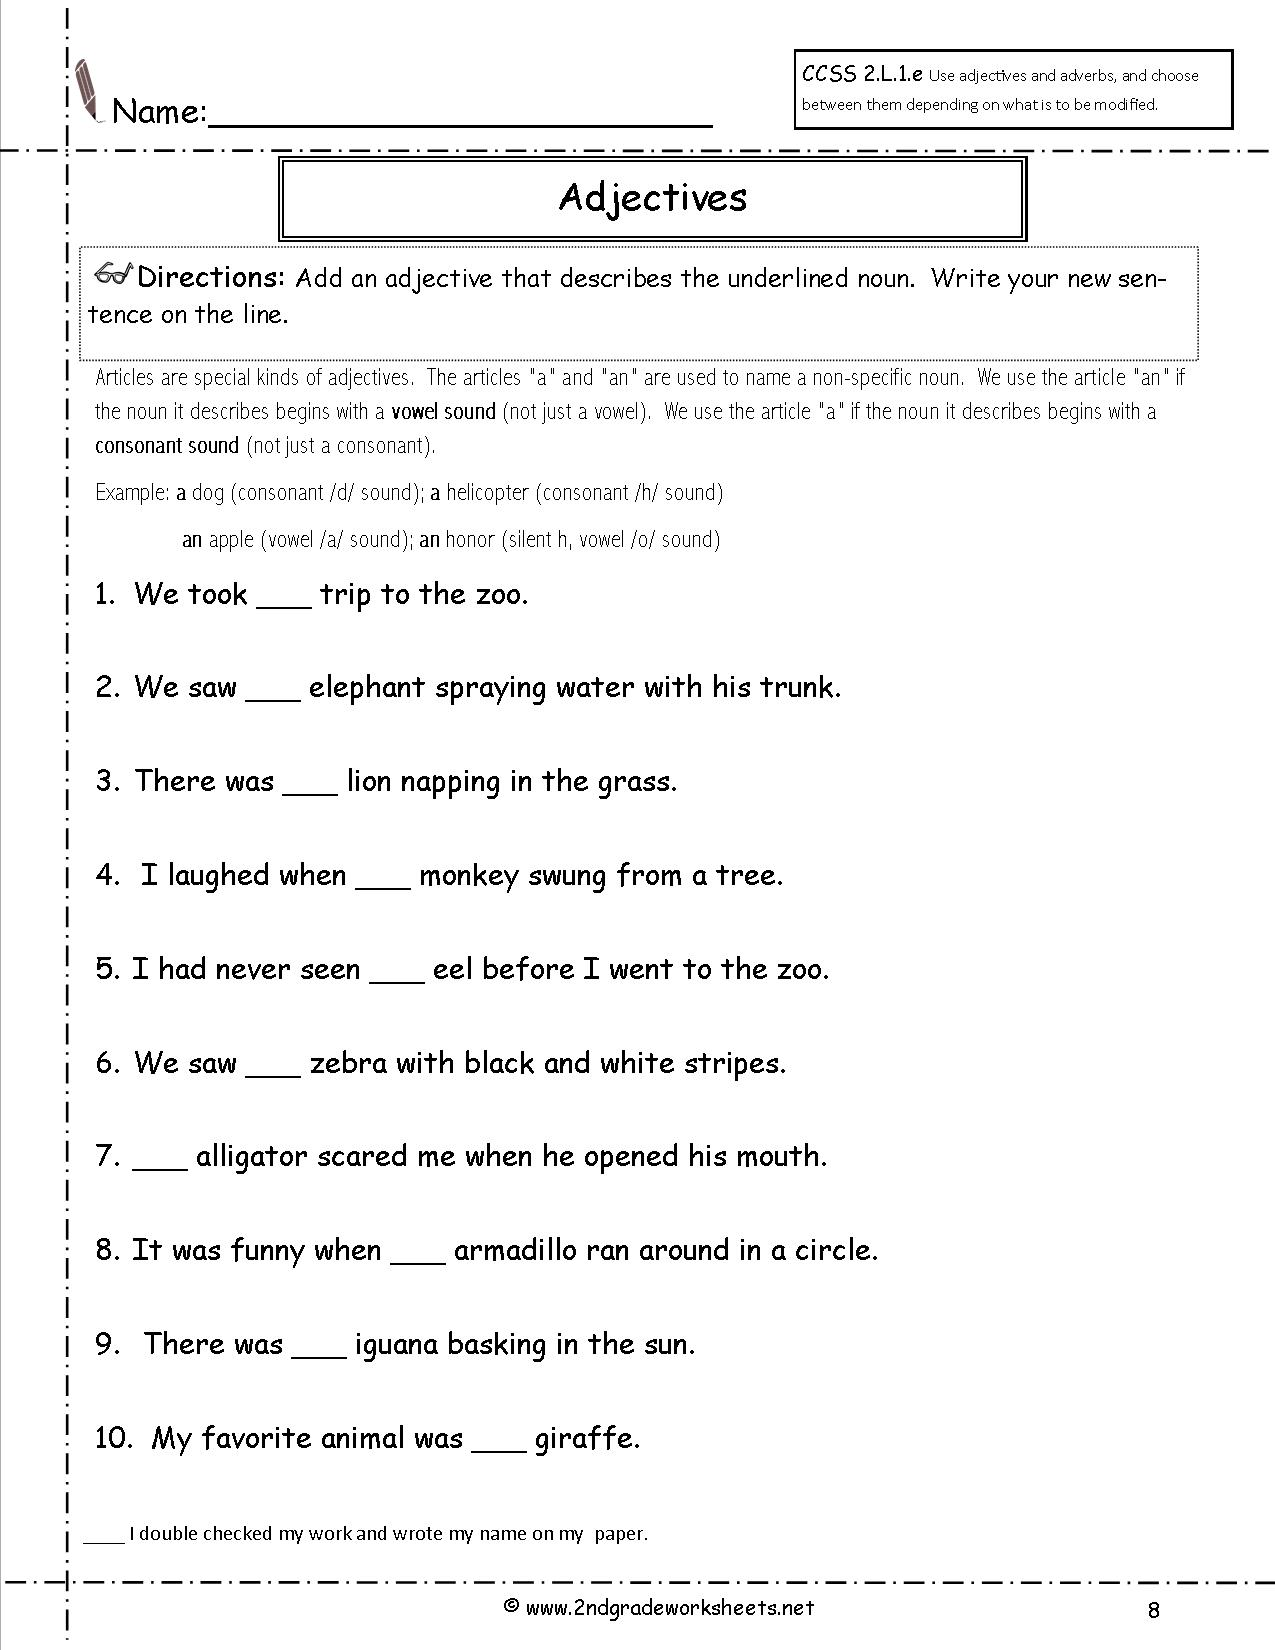 33 English Worksheet For Grade 2